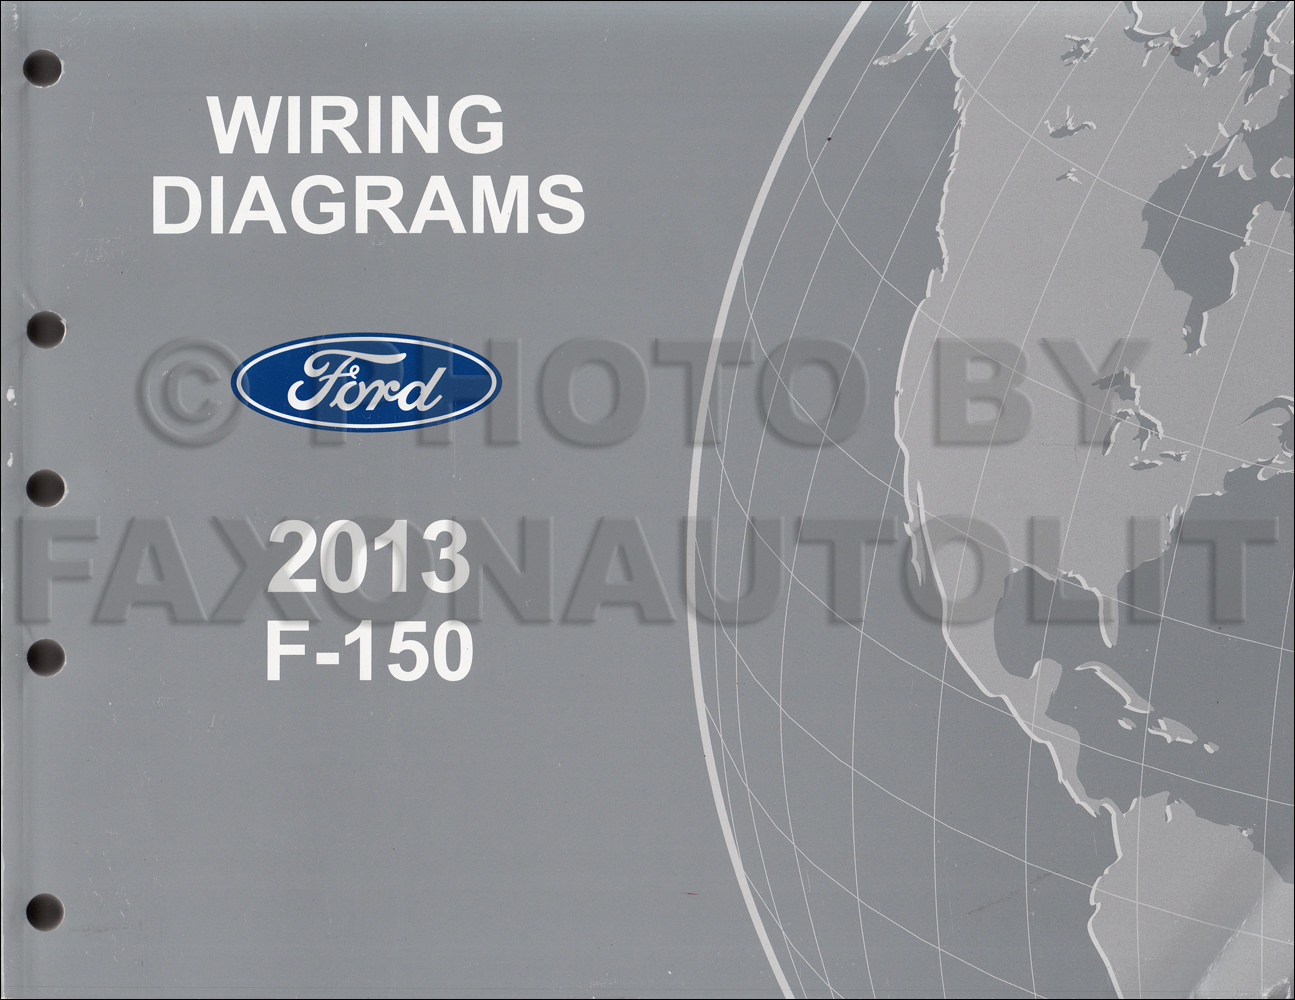 2013 Ford F-150 Wiring Diagram Manual Original  Ford Wiring Diagrams on 2012 mustang wiring diagram, 2013 ford explorer engine diagram, 2013 ford f150 diagram, 2013 ford parts catalog, 2013 ford fuse box diagram,